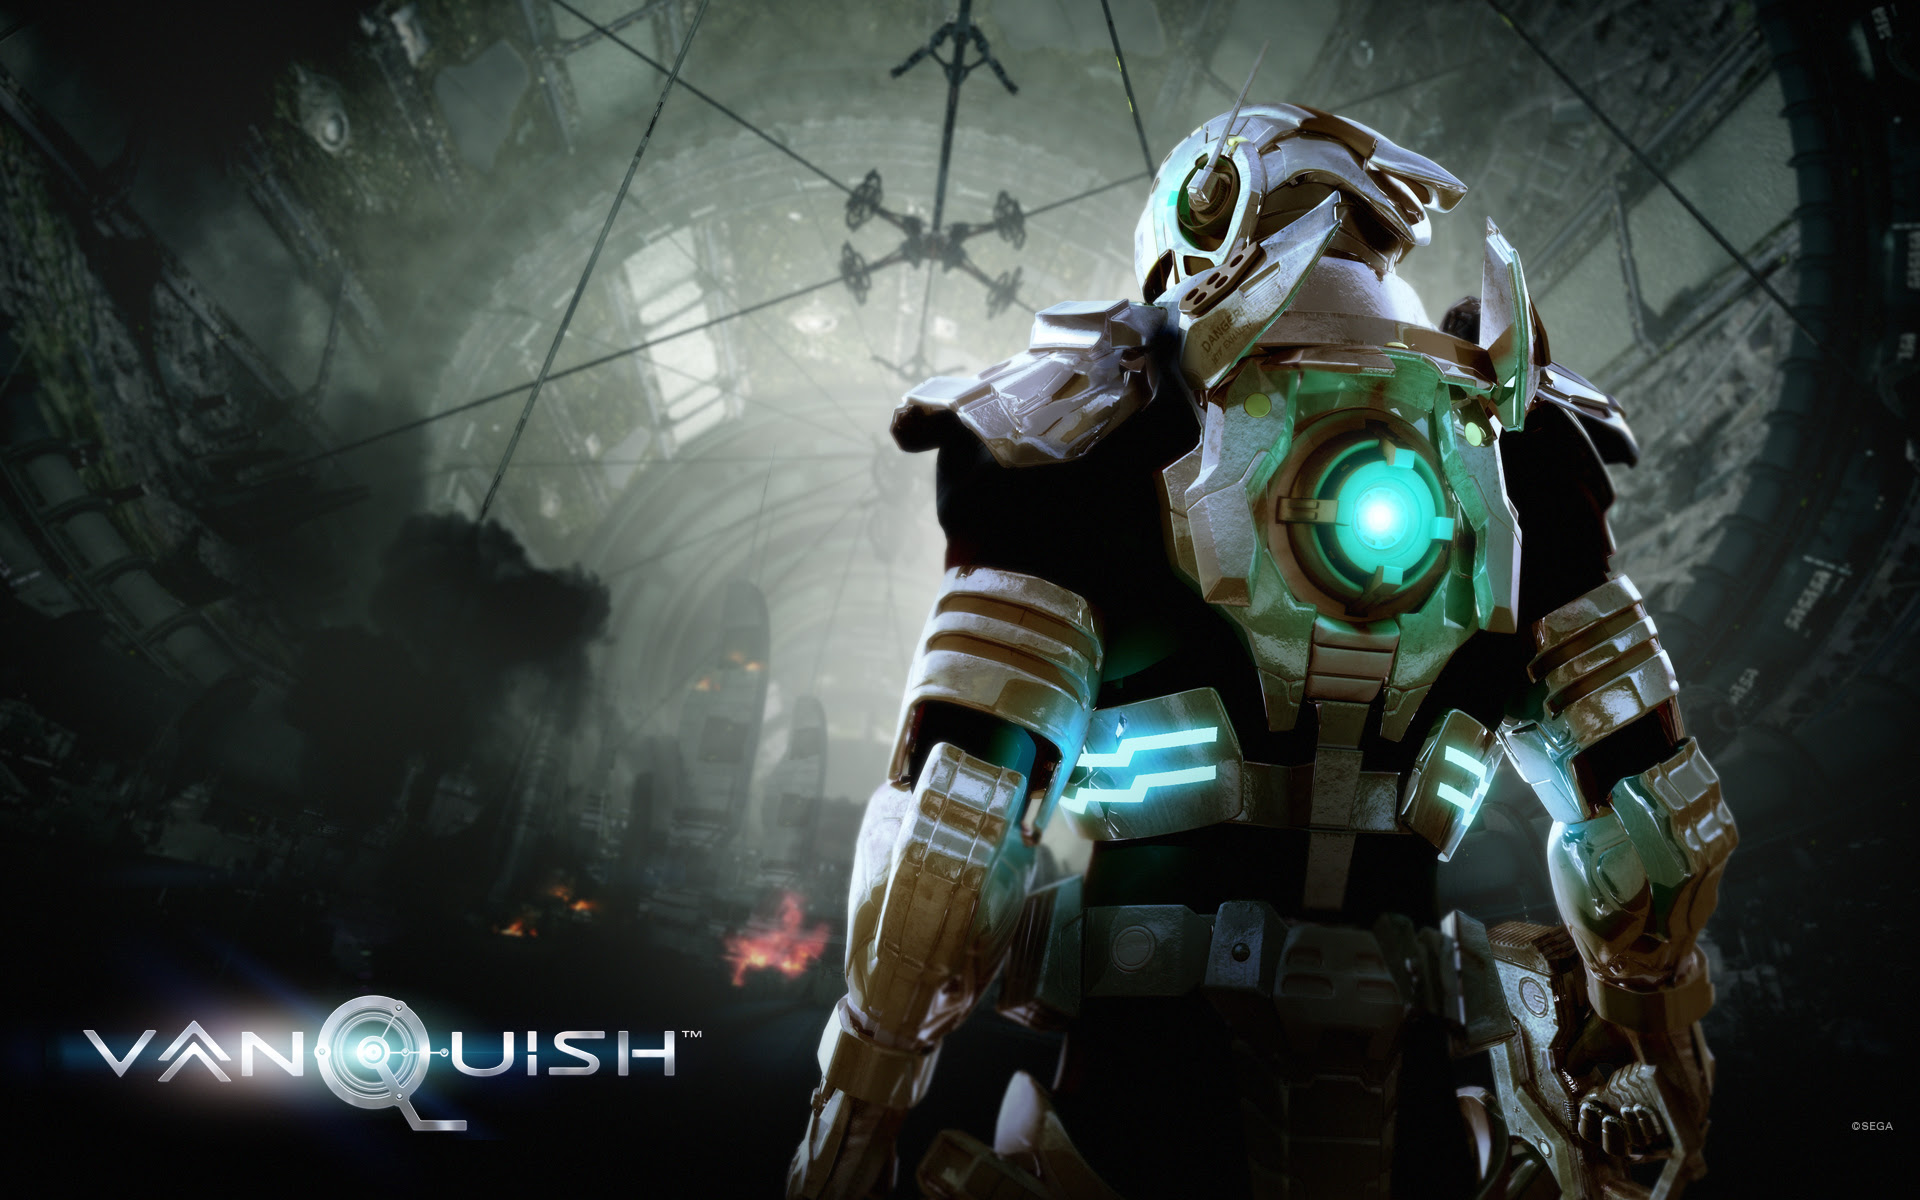 Vanquish Game Wallpaper 264864